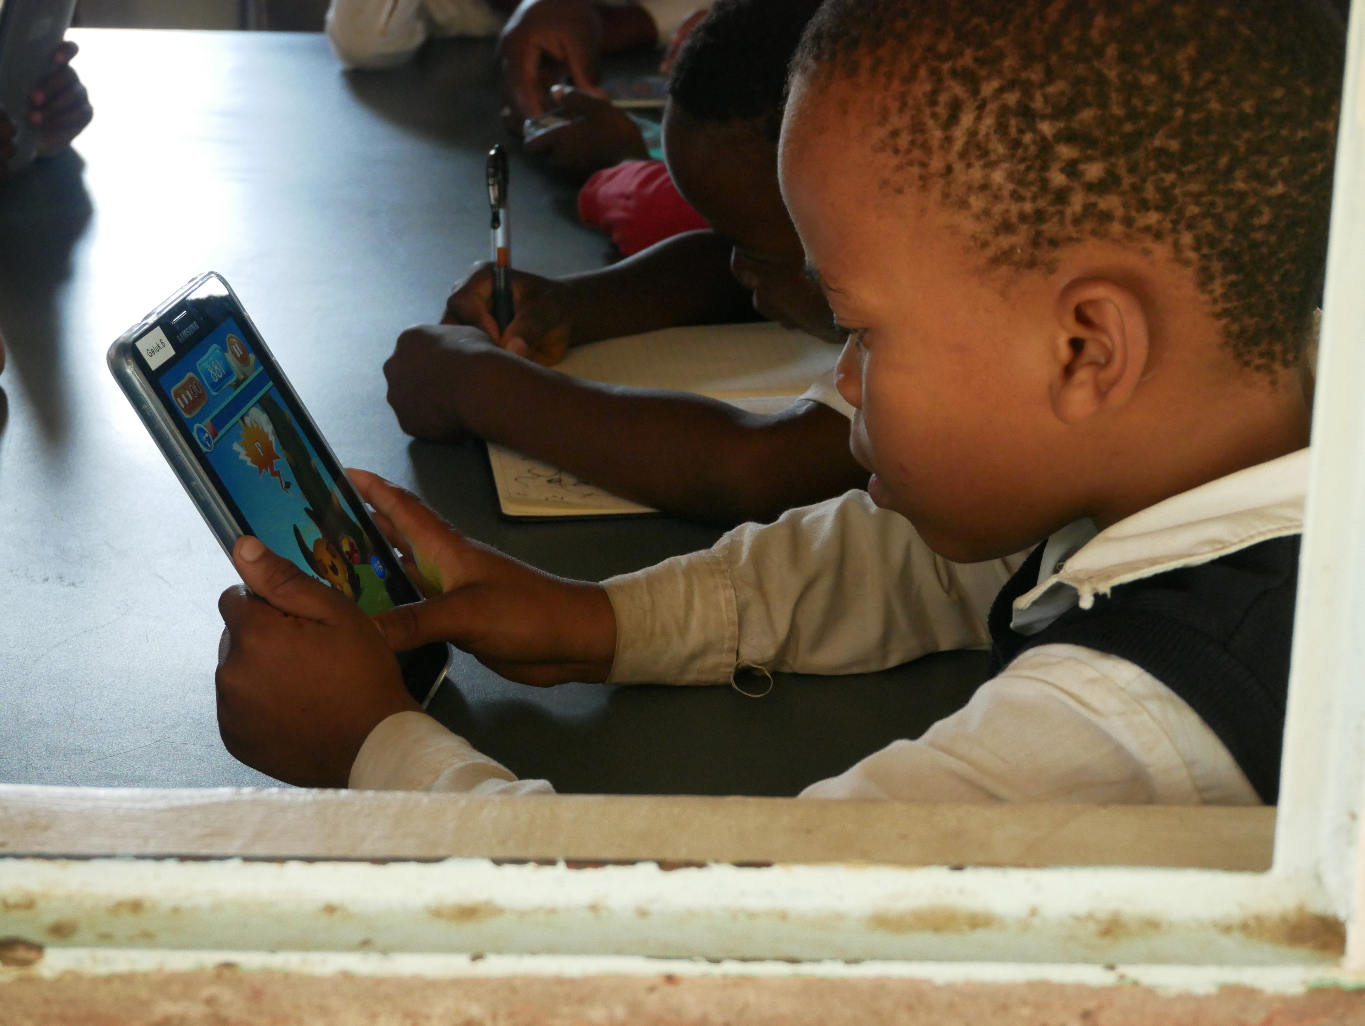 Early testing of Feed the Monster. This girl is using the isiZulu version of the Feed the Monster app that teaches early literacy skills. This app is now available in all 11 official South African languages.